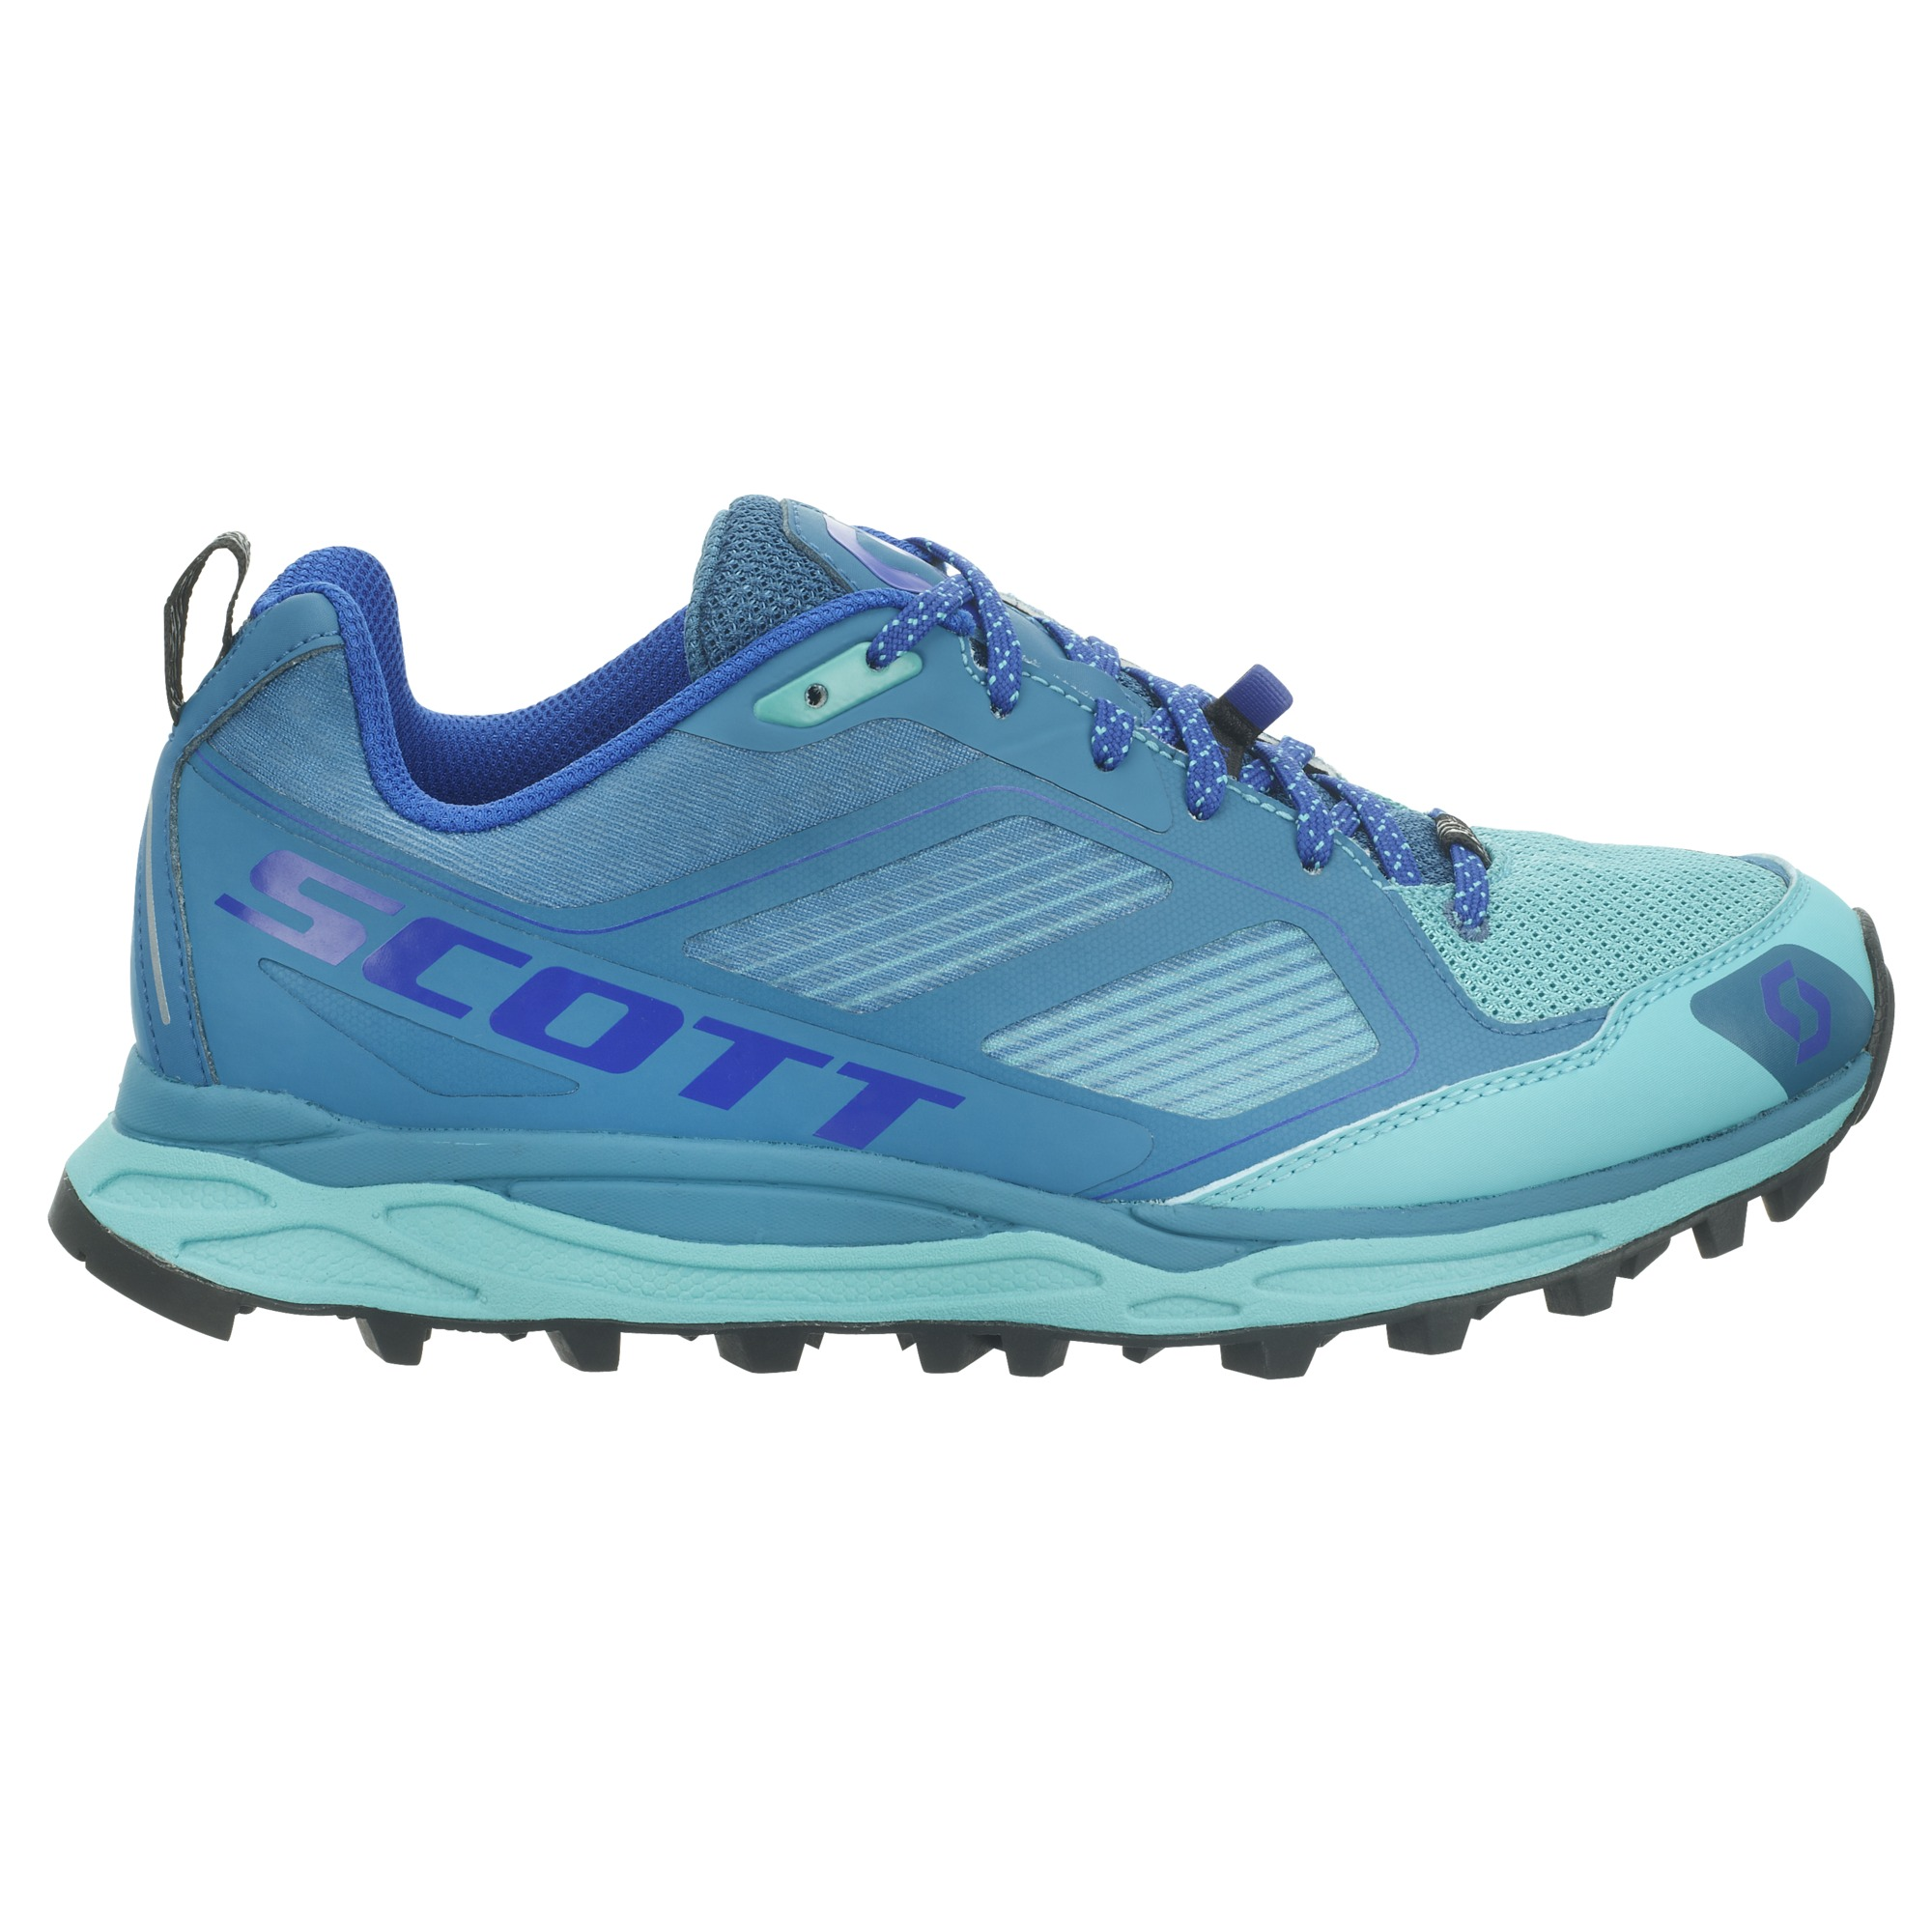 SCOTT Kinabalu Supertrac Women's Shoe